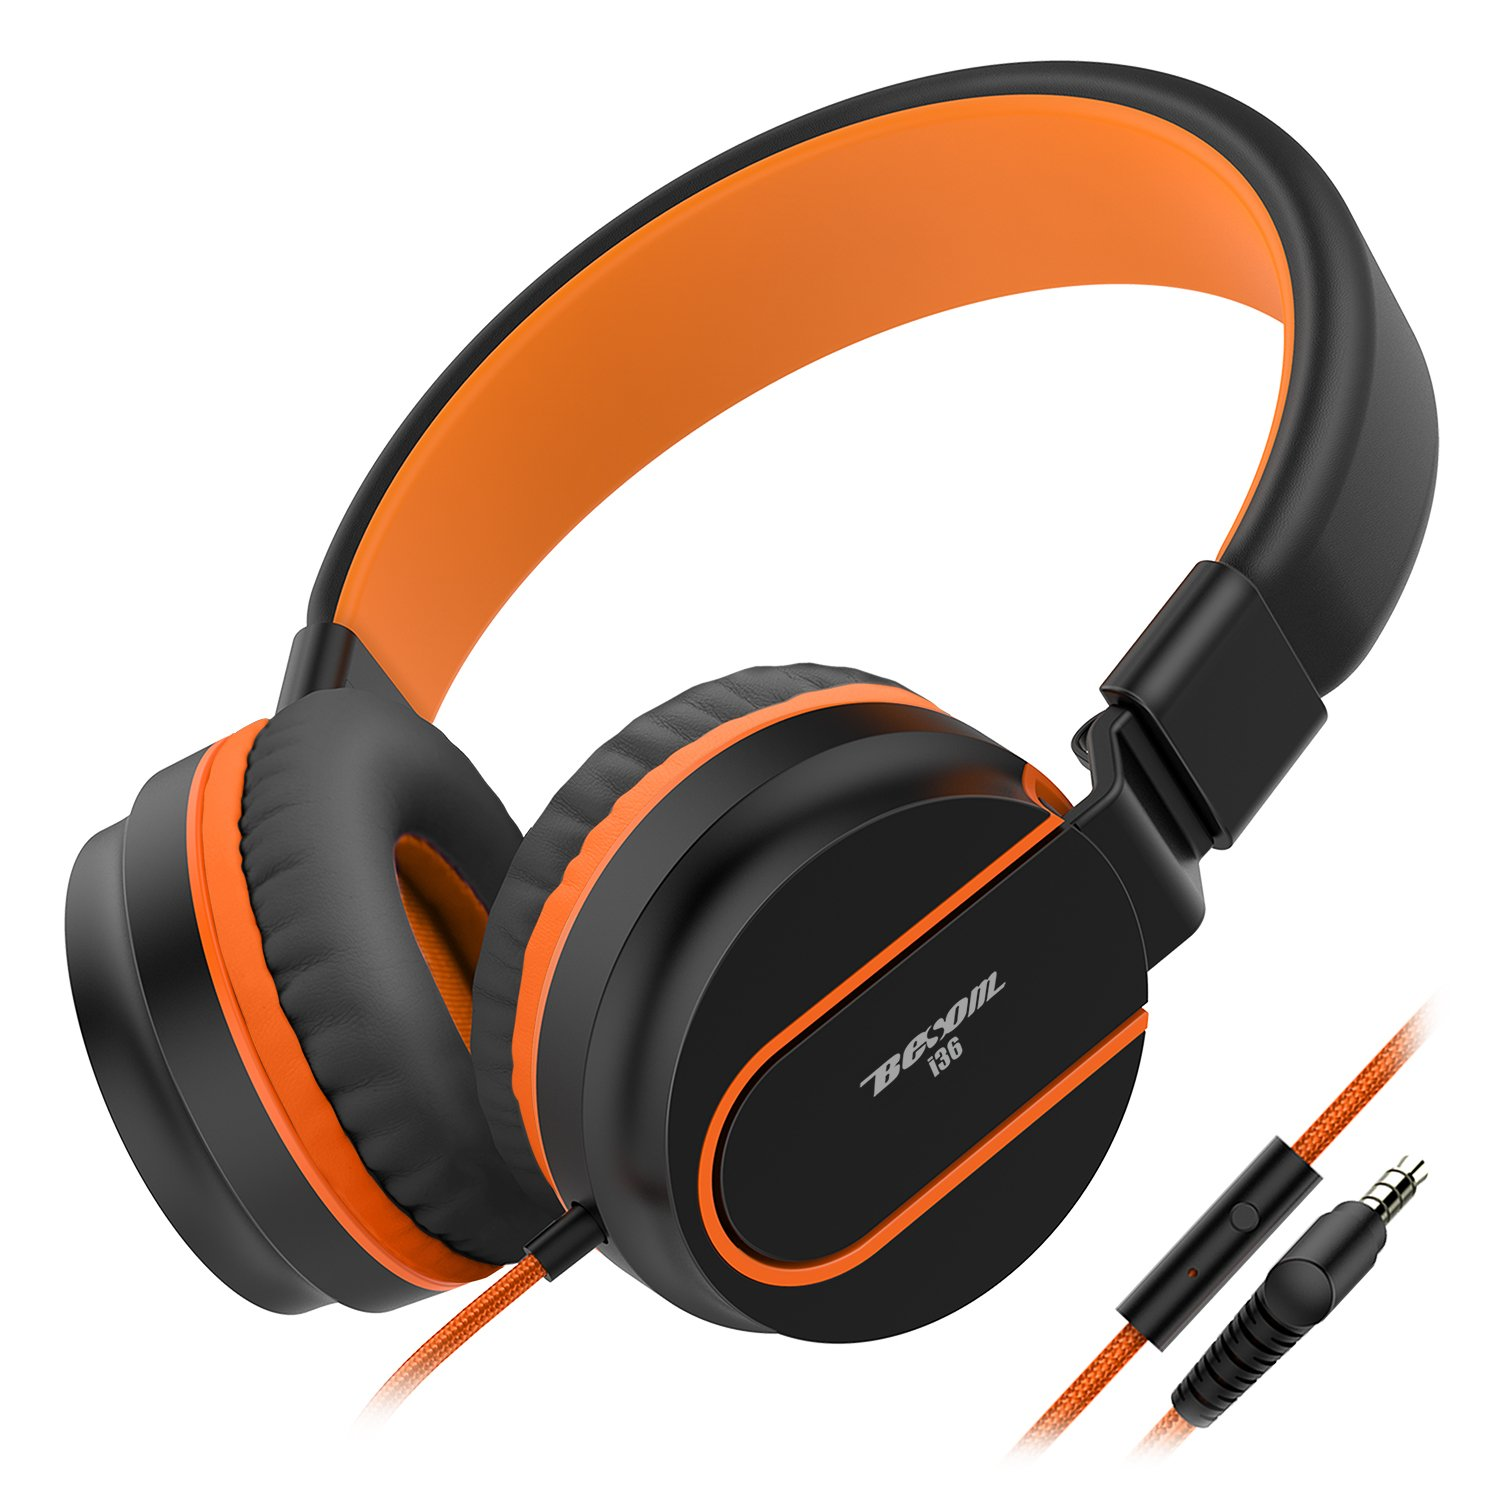 Besom i36 Headphones for kids,Children,Teens,Girls,Boys,Adults, with Microphone 3.5mm Stereo Adjustable Foldable Headset for Cellphones Computer Mp3/4 iPad-Black/Orange by Besom